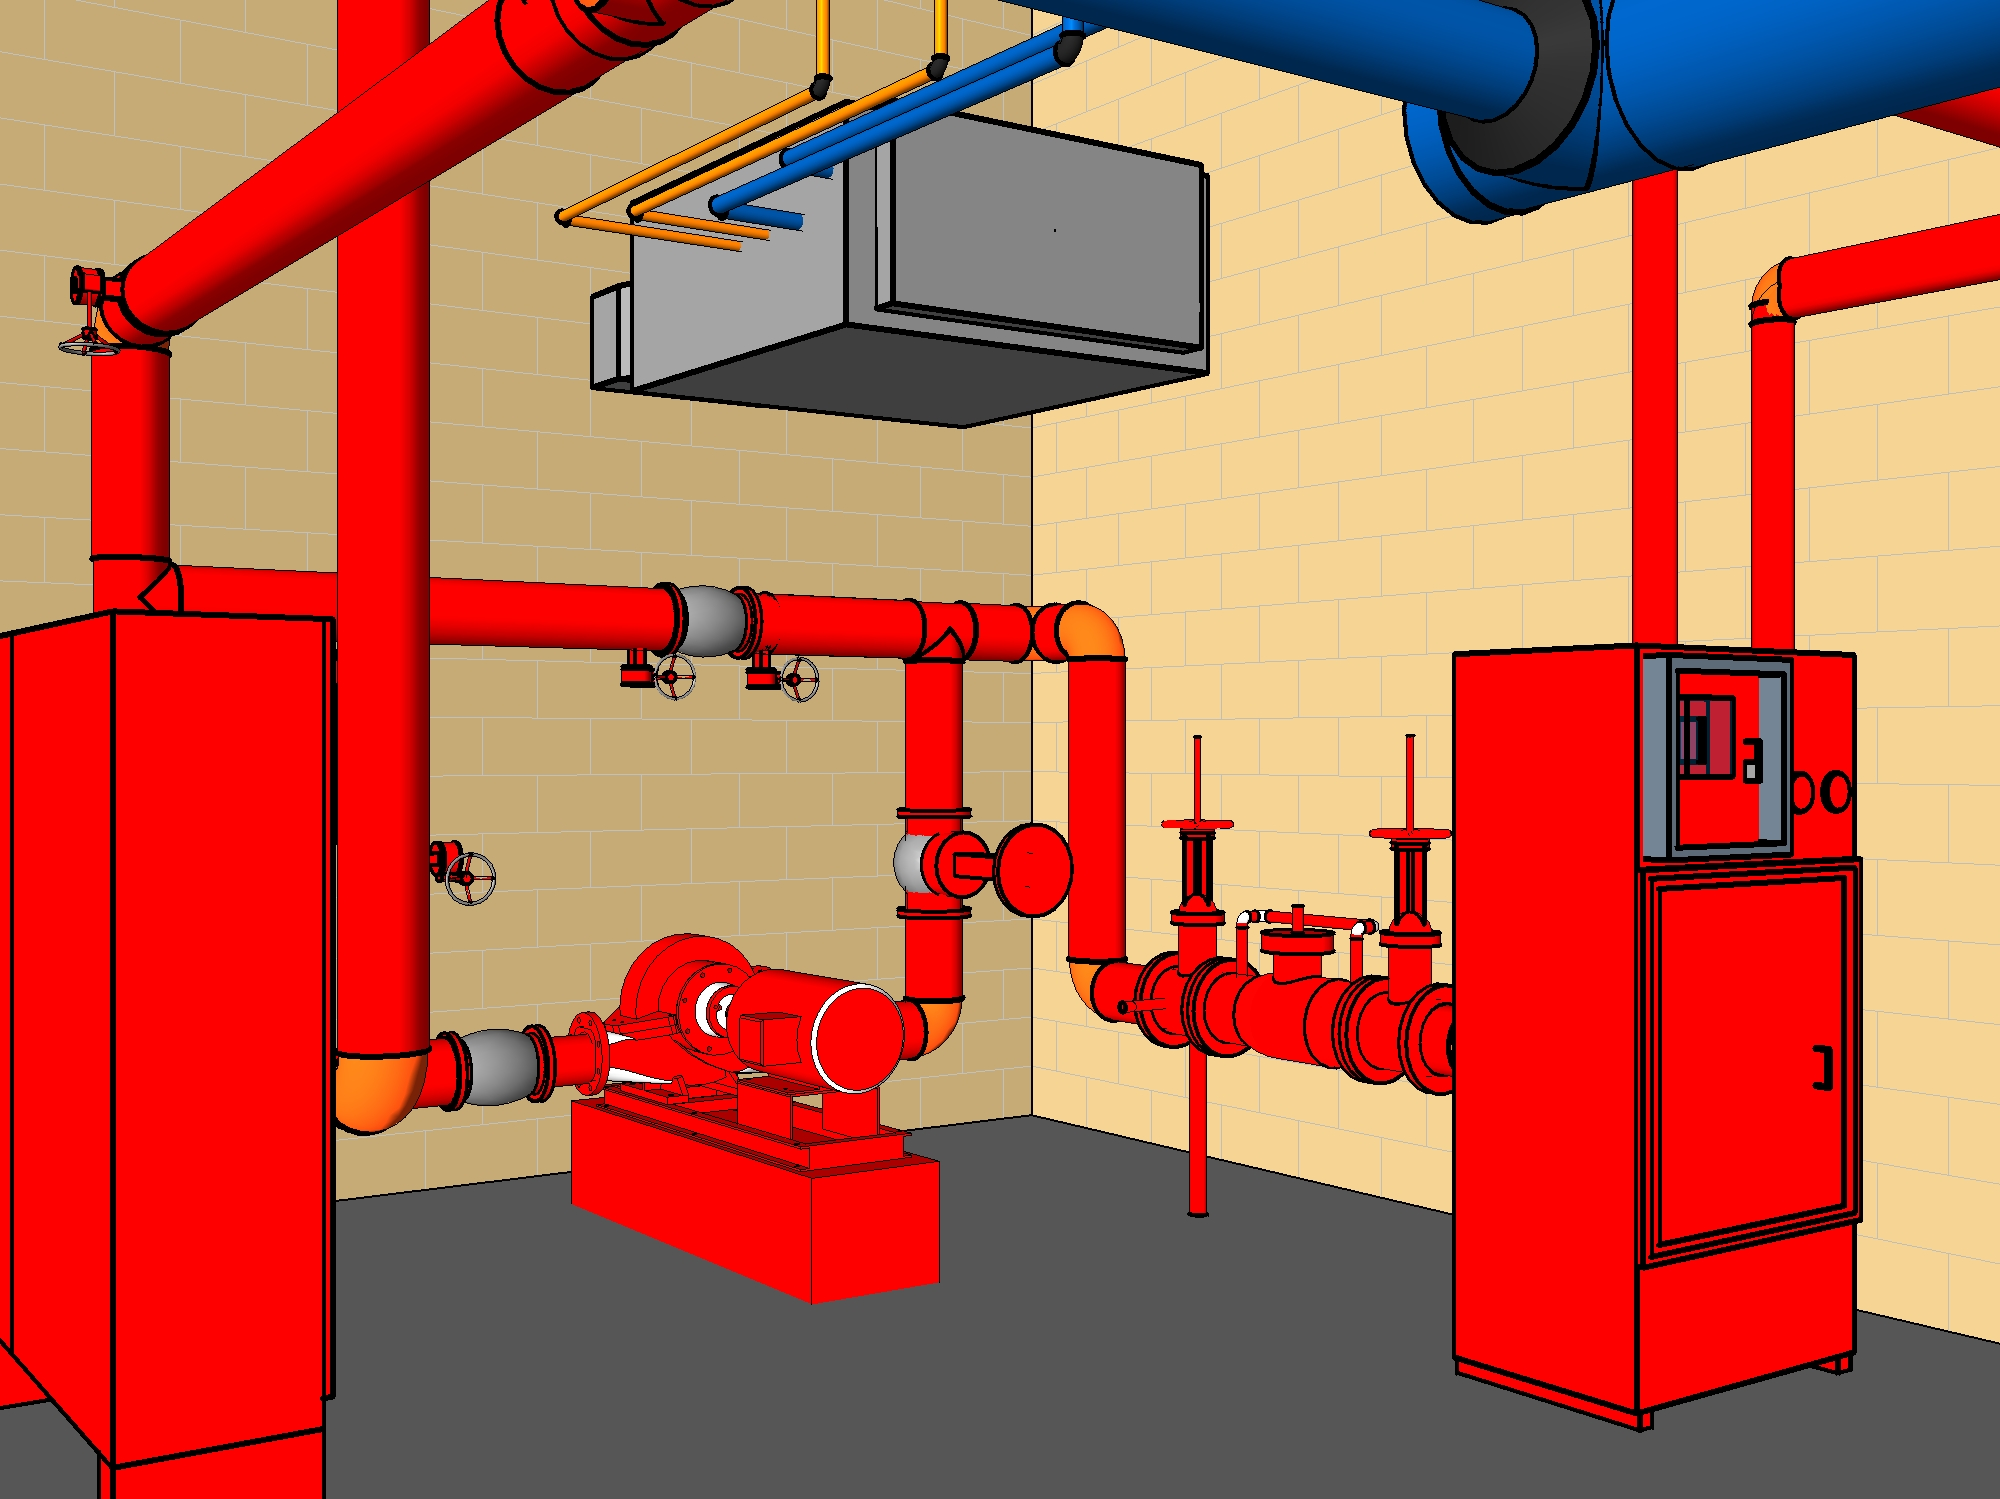 Designing Fire Sprinklers?? - Autodesk Community- Revit Products